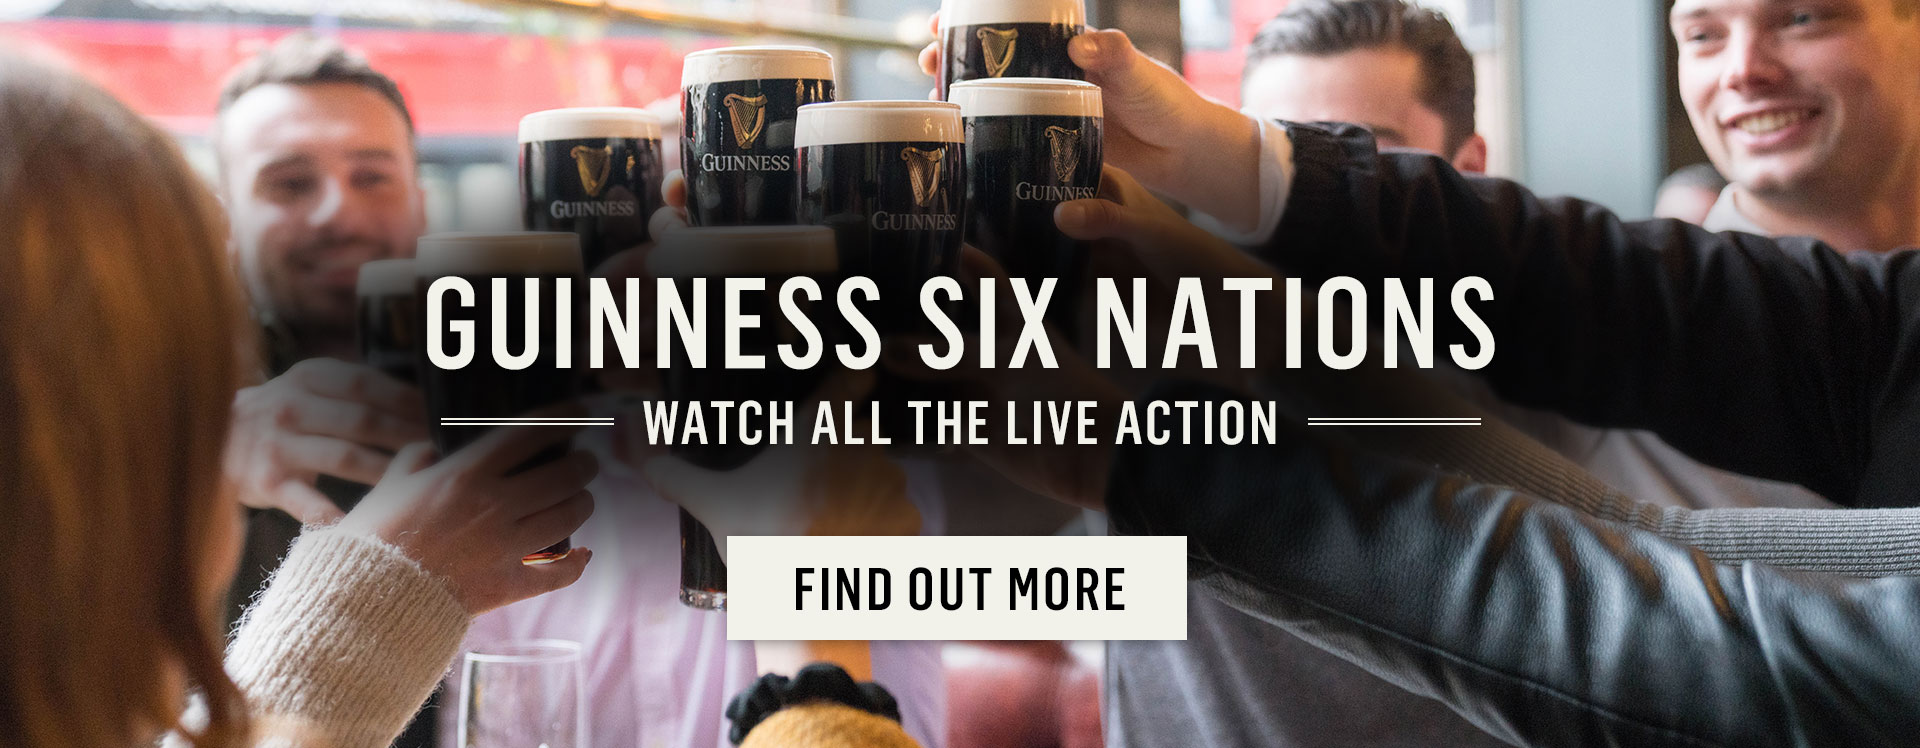 Six Nations at Nicholson's